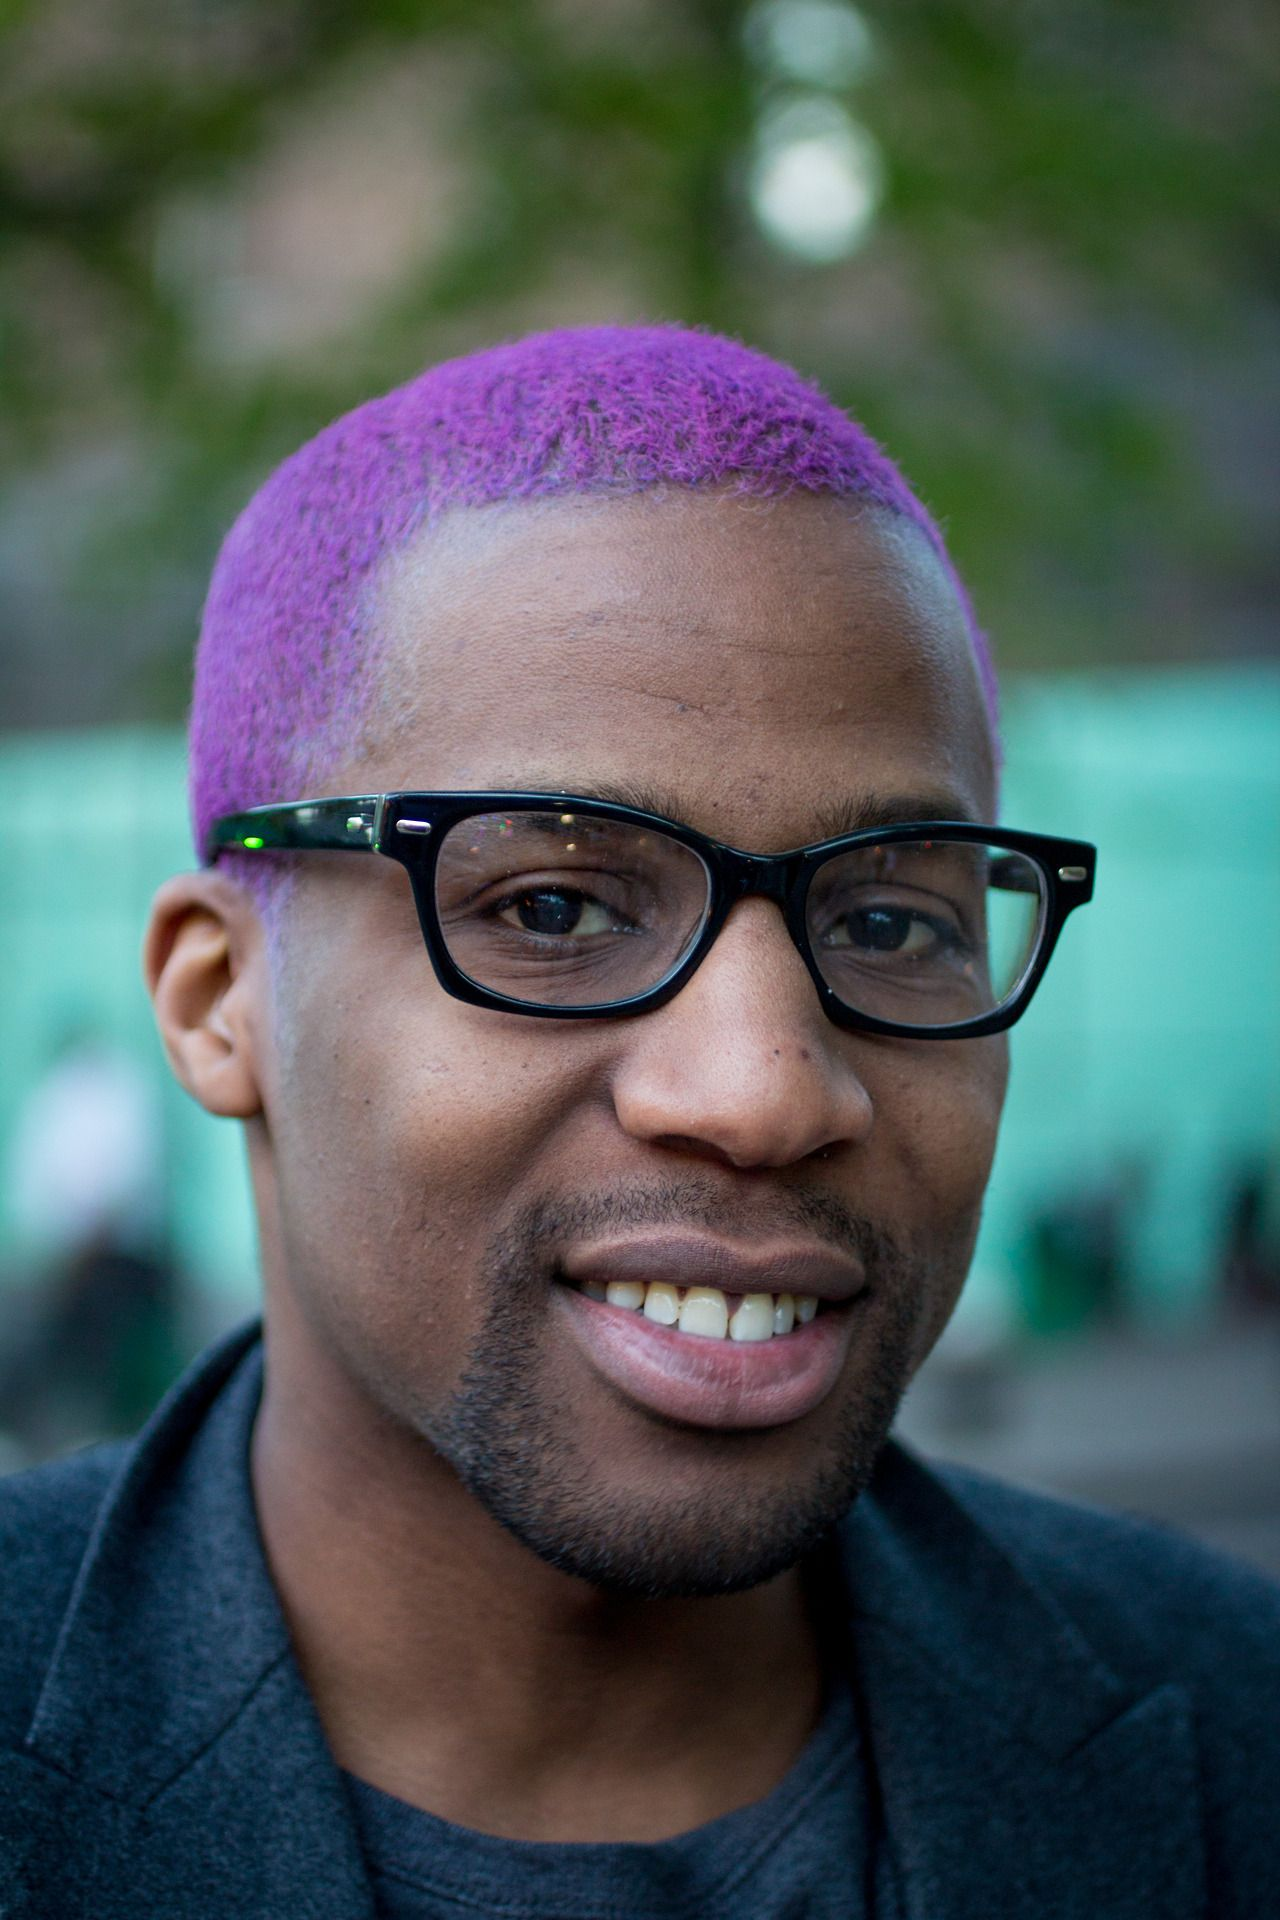 purple hair #man dude alternative